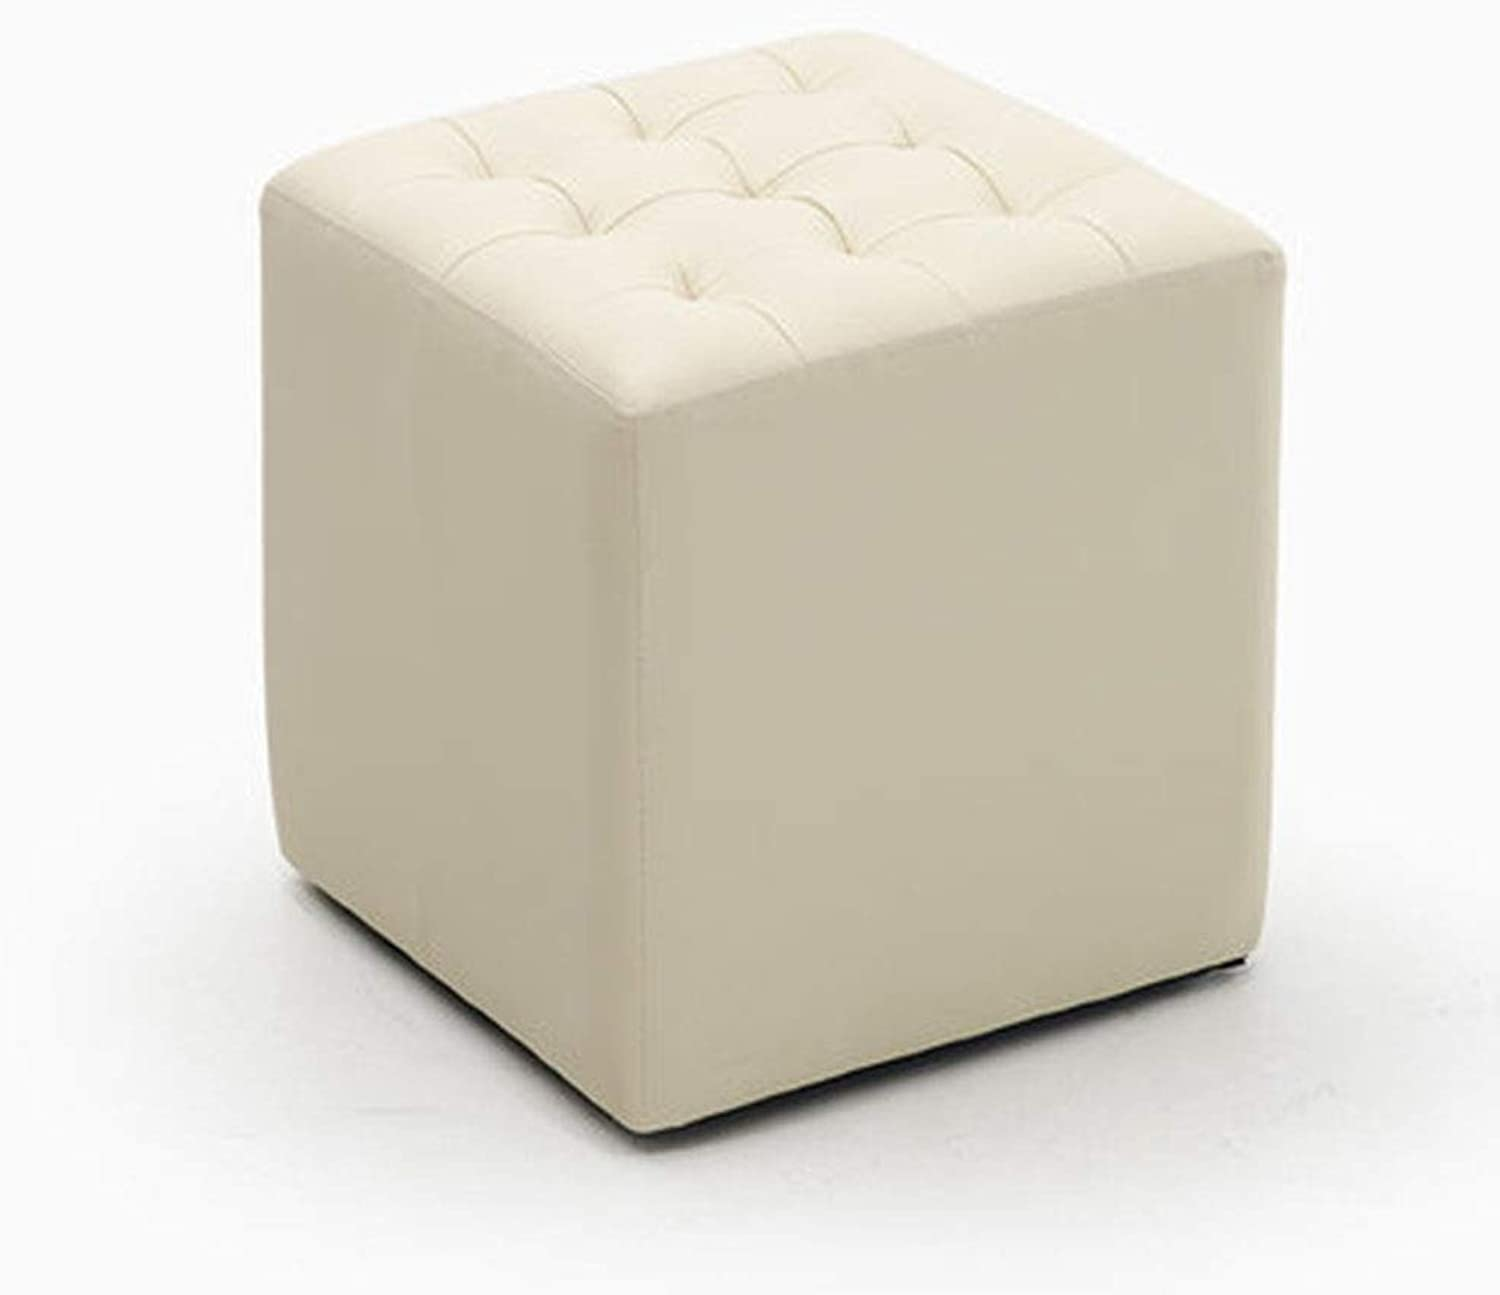 Creative Square Footstool Sofa Stool, Soft and Comfortable Smooth and Easy to Change shoes Bench Solid Wood Frame JINRONG (color   White)